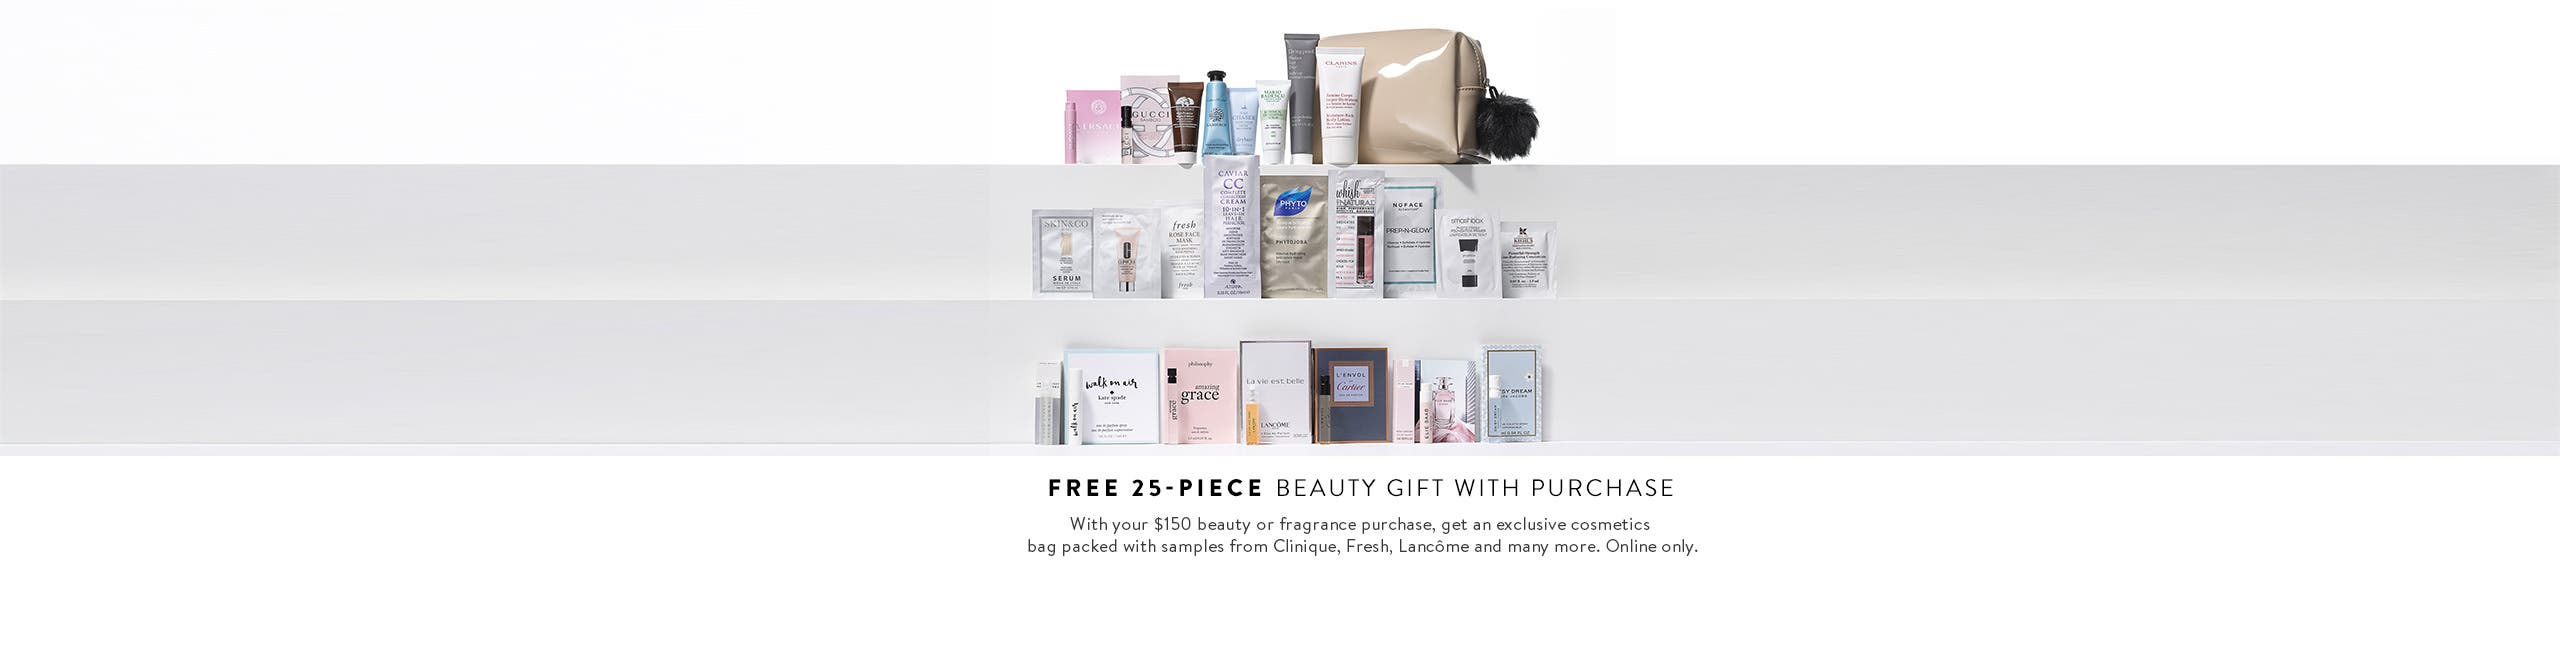 Receive a free 25-piece bonus gift with your $150 Beauty or Fragrance purchase